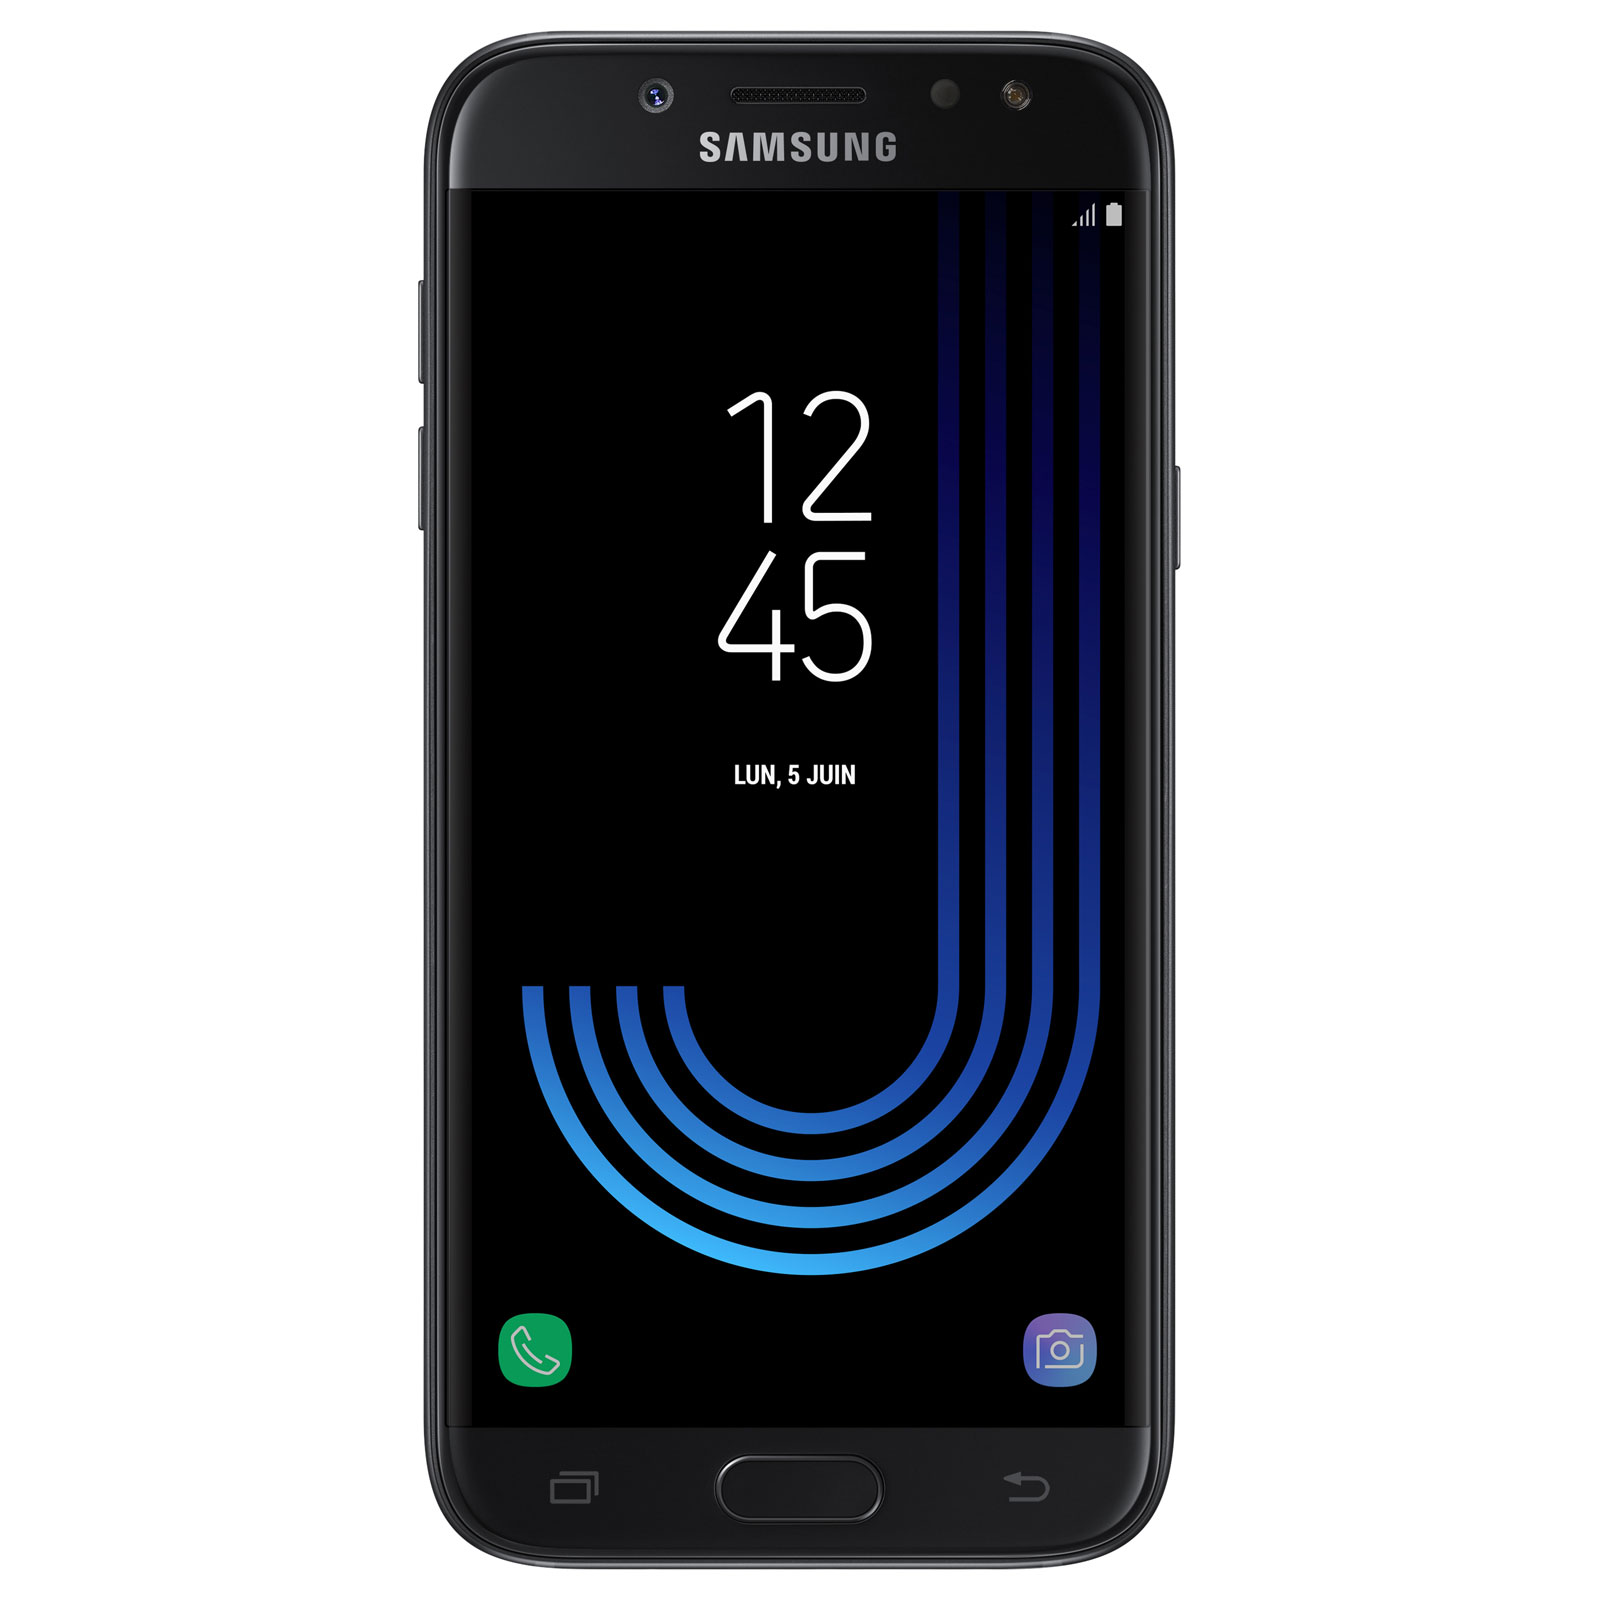 samsung galaxy j5 2017 noir mobile smartphone samsung sur. Black Bedroom Furniture Sets. Home Design Ideas